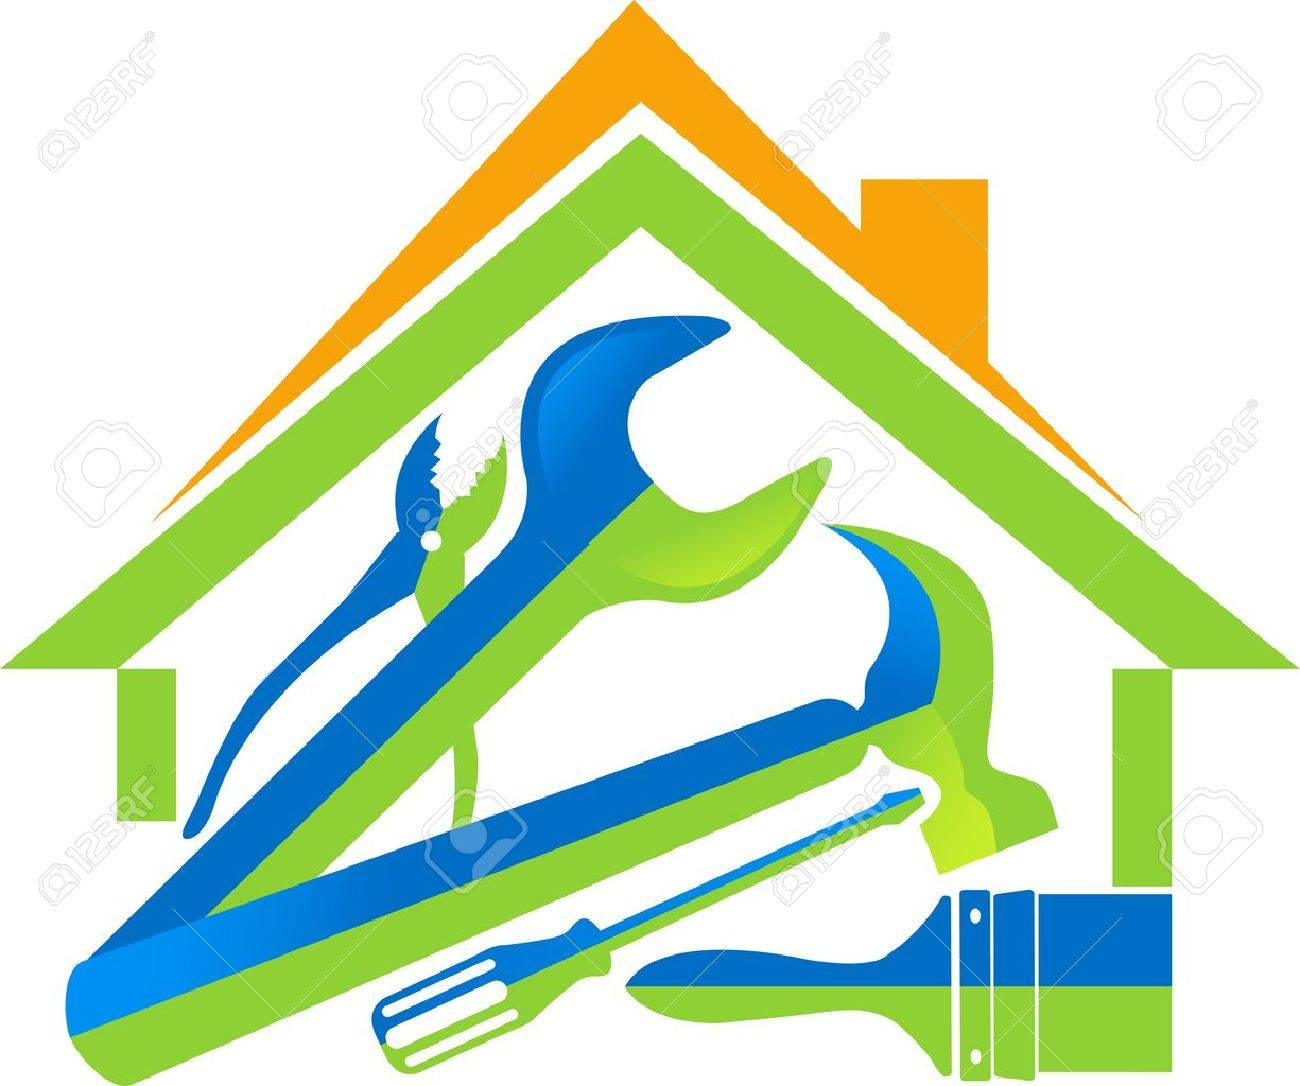 Illustration art of a home tools with isolated background Stock Vector - 21739336